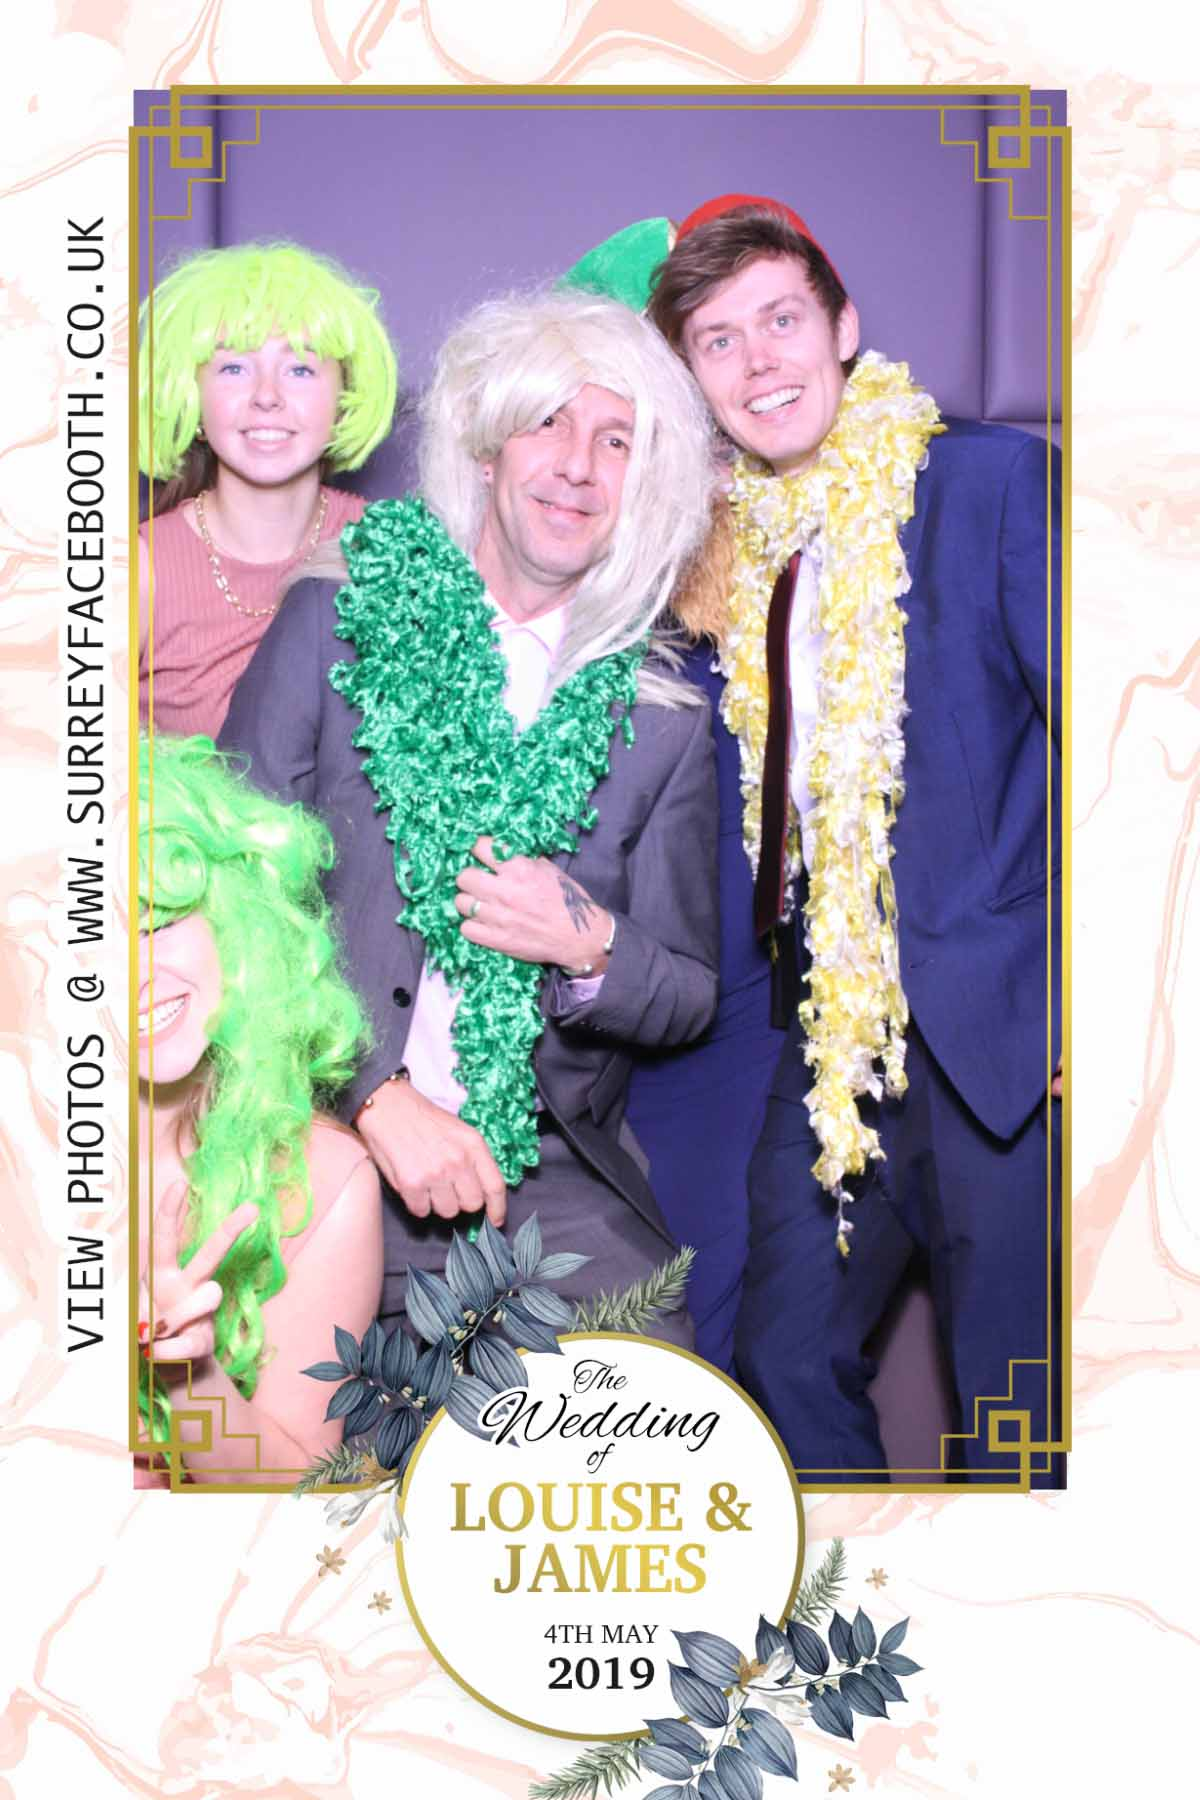 Louise & James' Wedding | View more photos from the event at galleries.surreyfacebooth.co.uk/u/Surrey-FaceBooth/Louise-James-Wedding